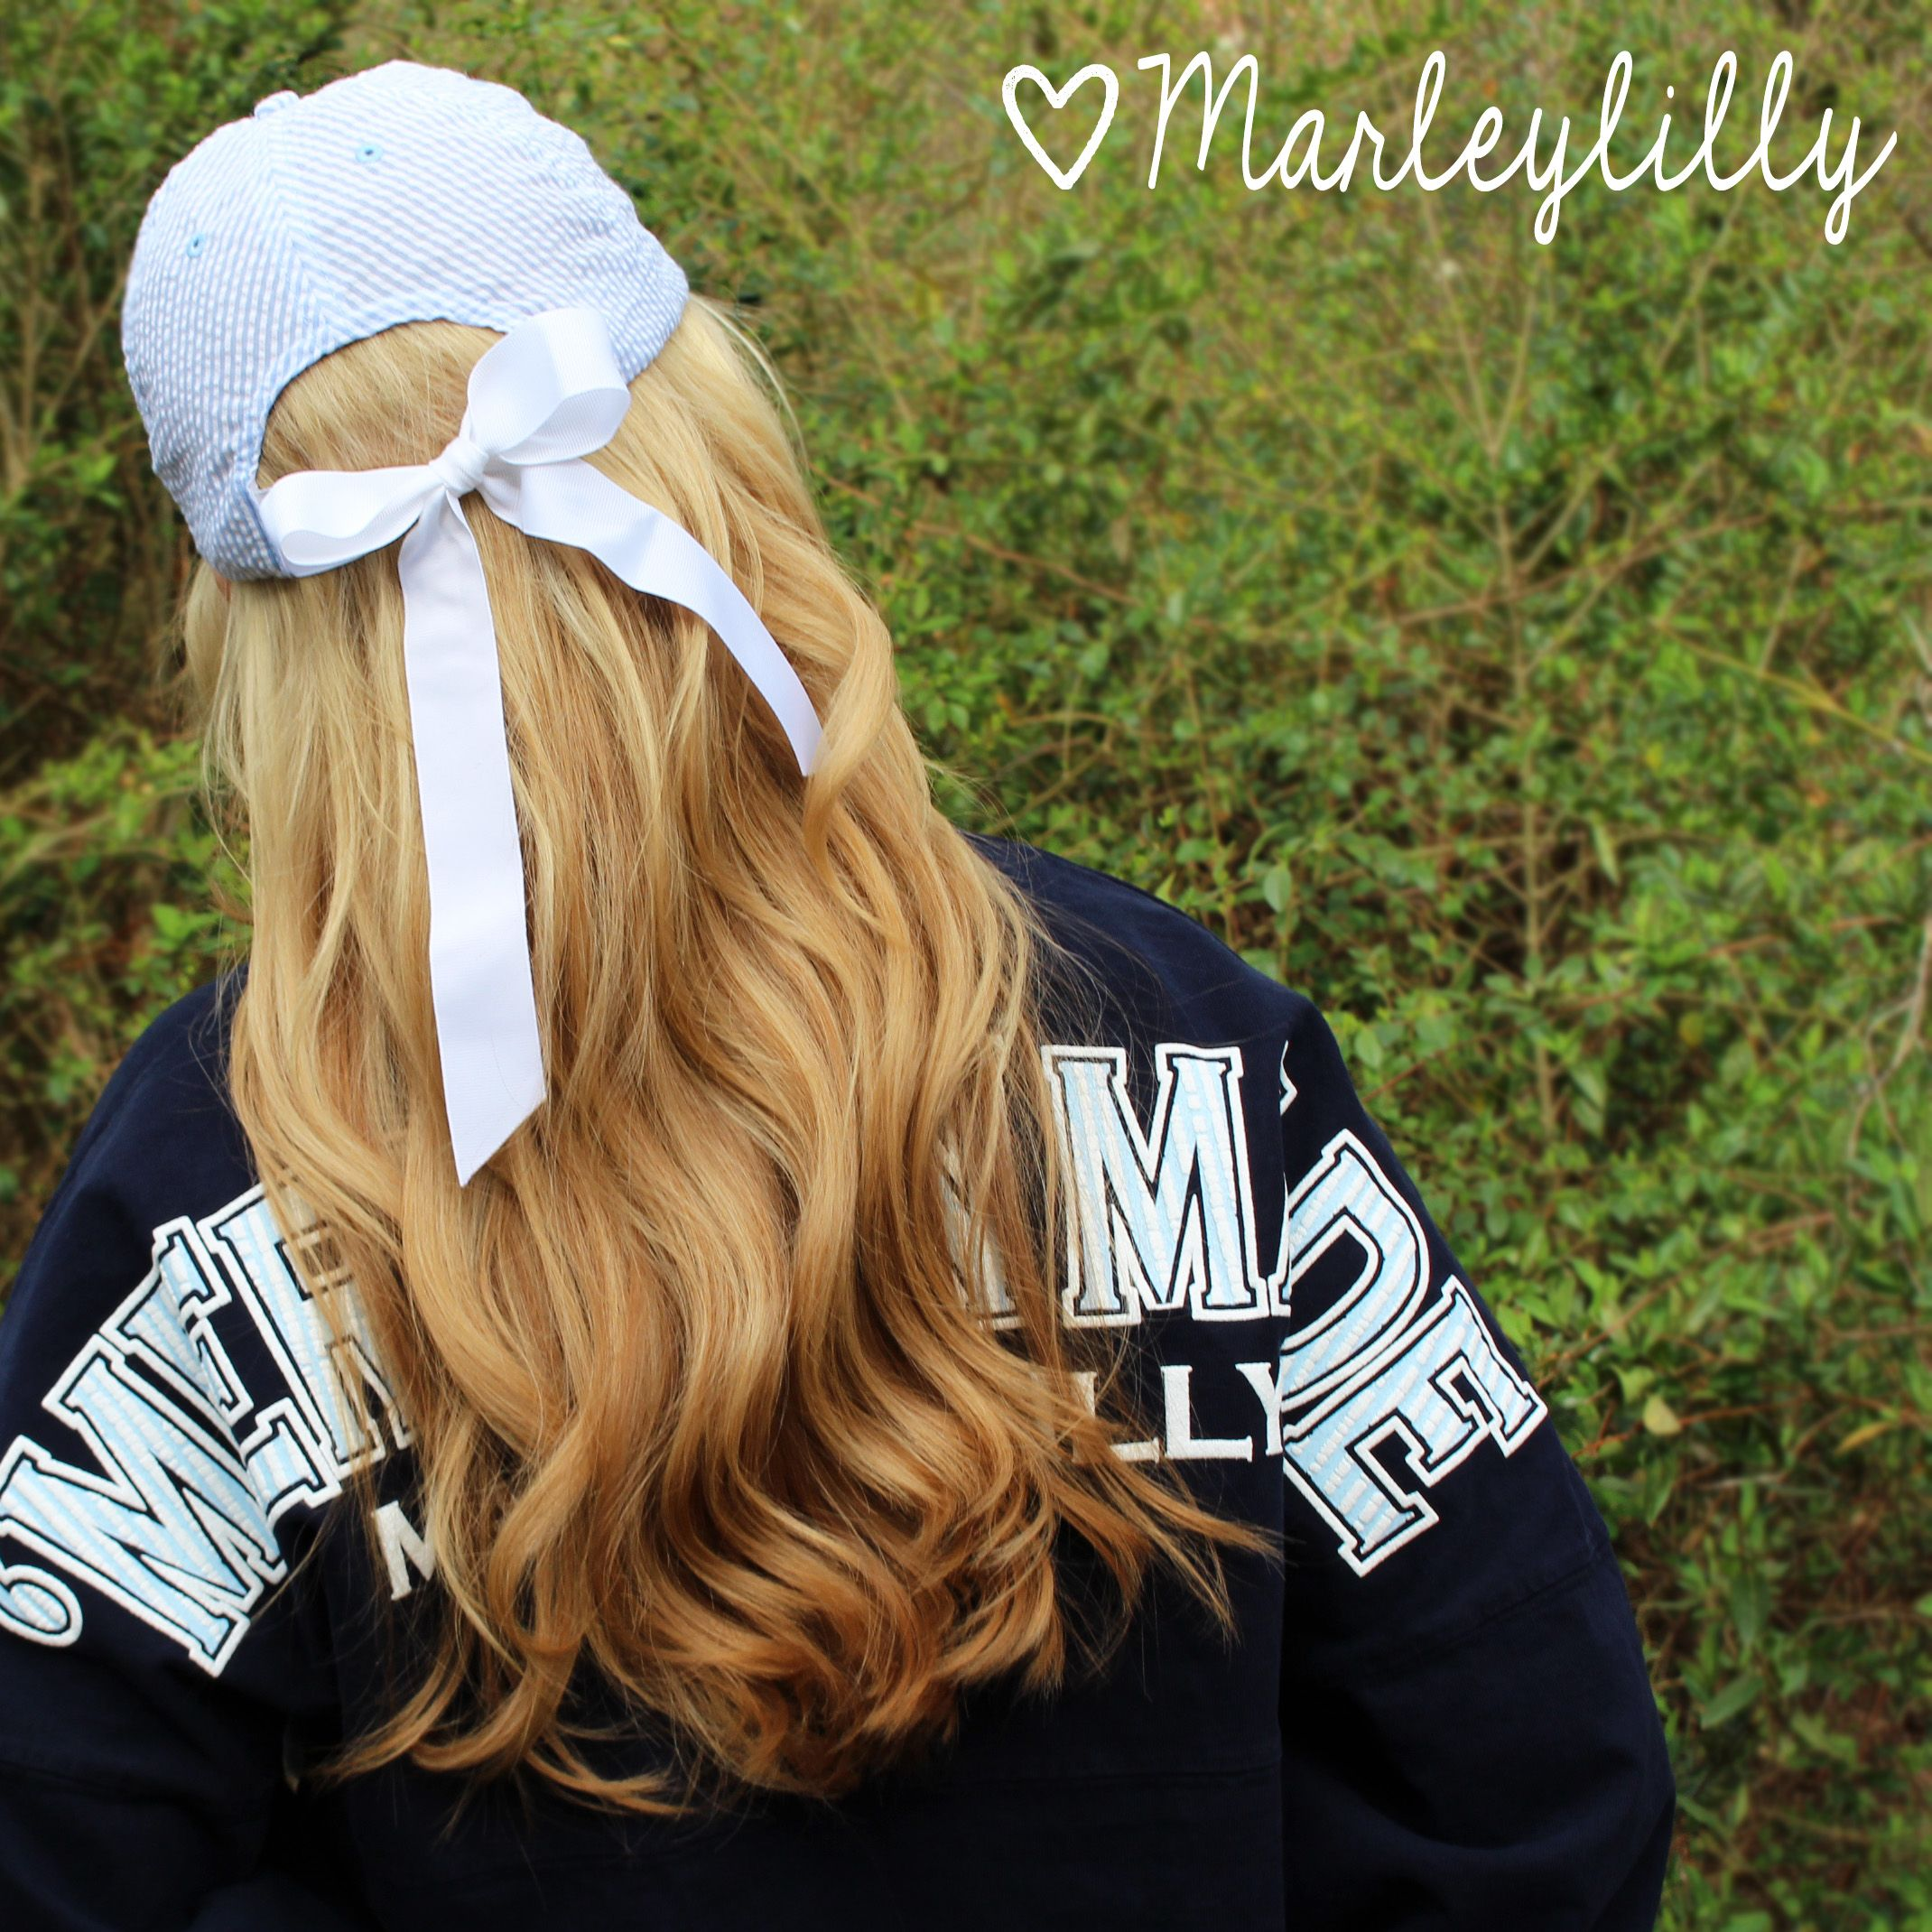 21b18a2fd026f Absolutely love the bow in the back of the hat-so cute and different !  Marleylilly.com - Monogrammed Seersucker Baseball Hat +